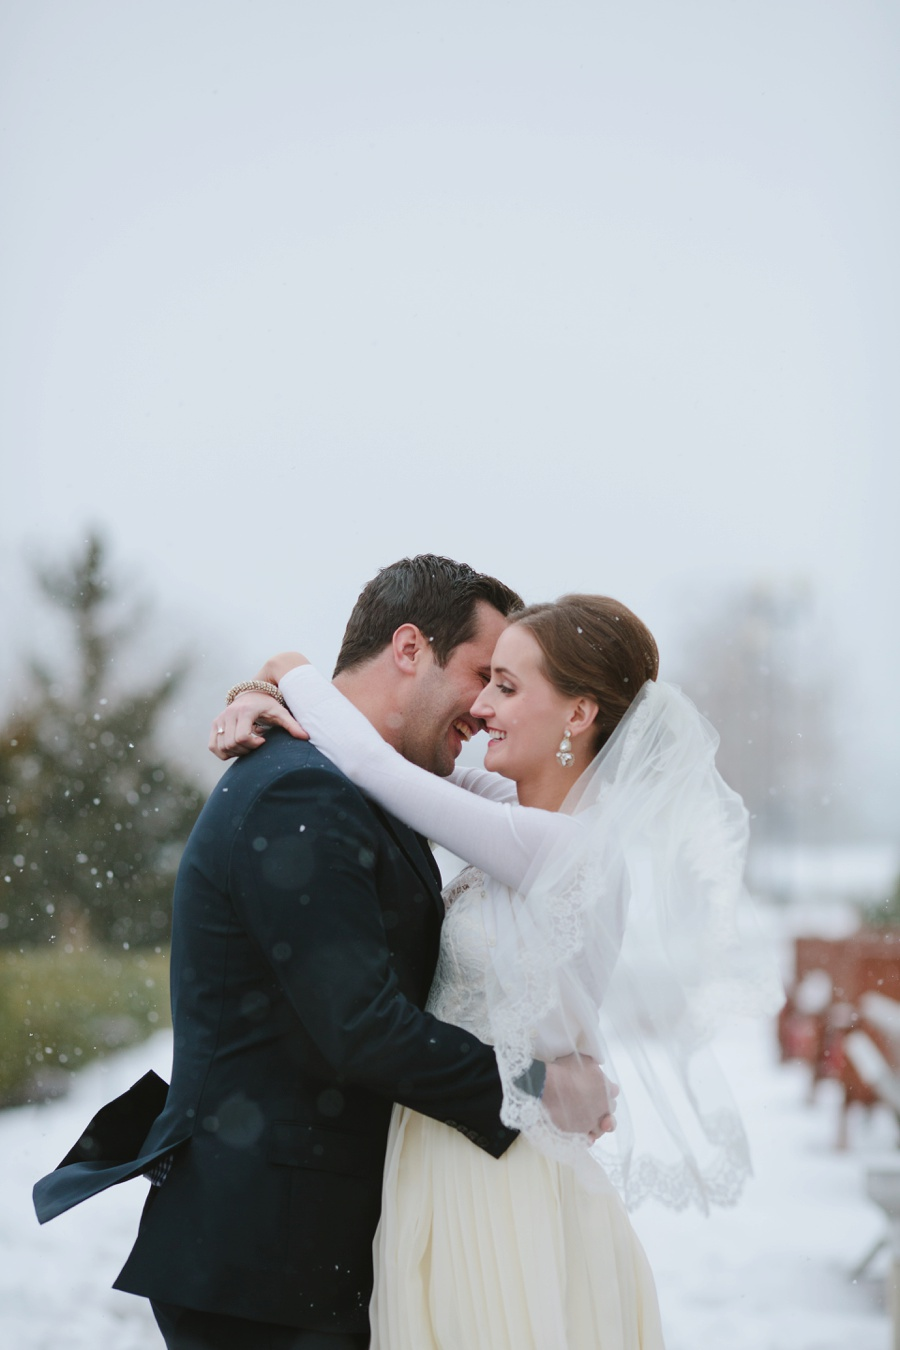 Liberty House wedding - Winter Wedding Photography